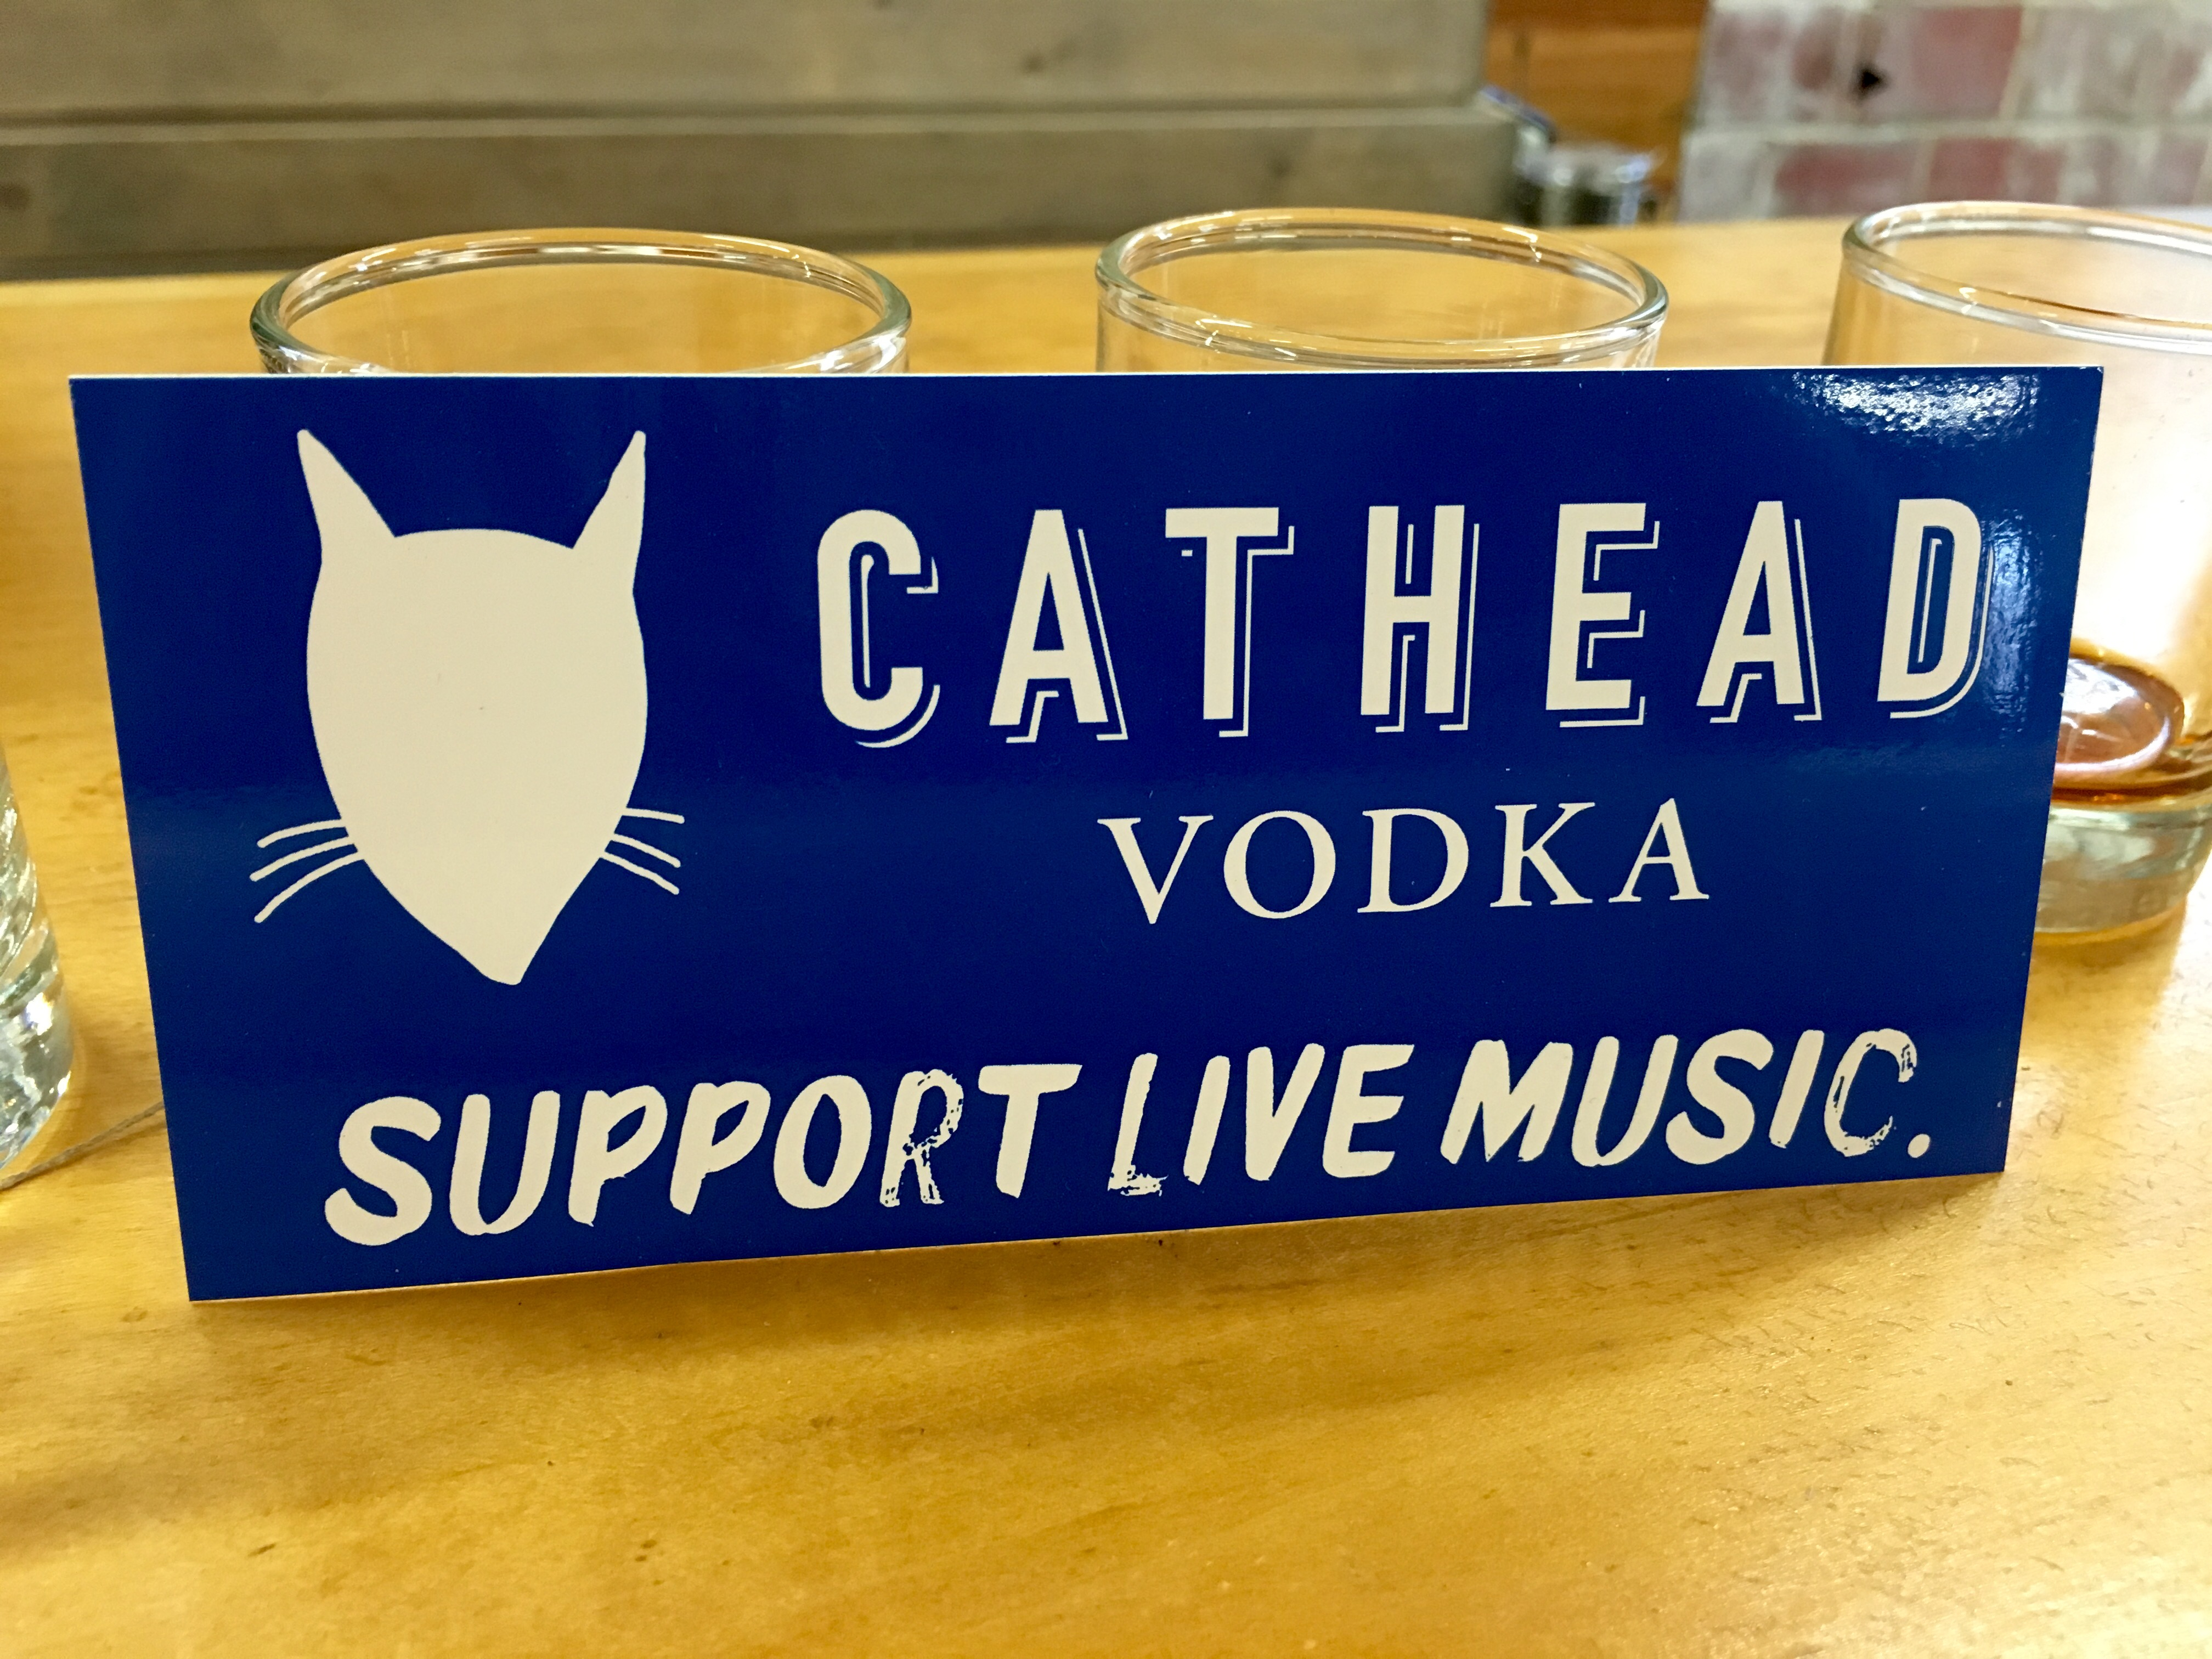 A bumper sticker declares the musical intentions of Cathead Vodka.